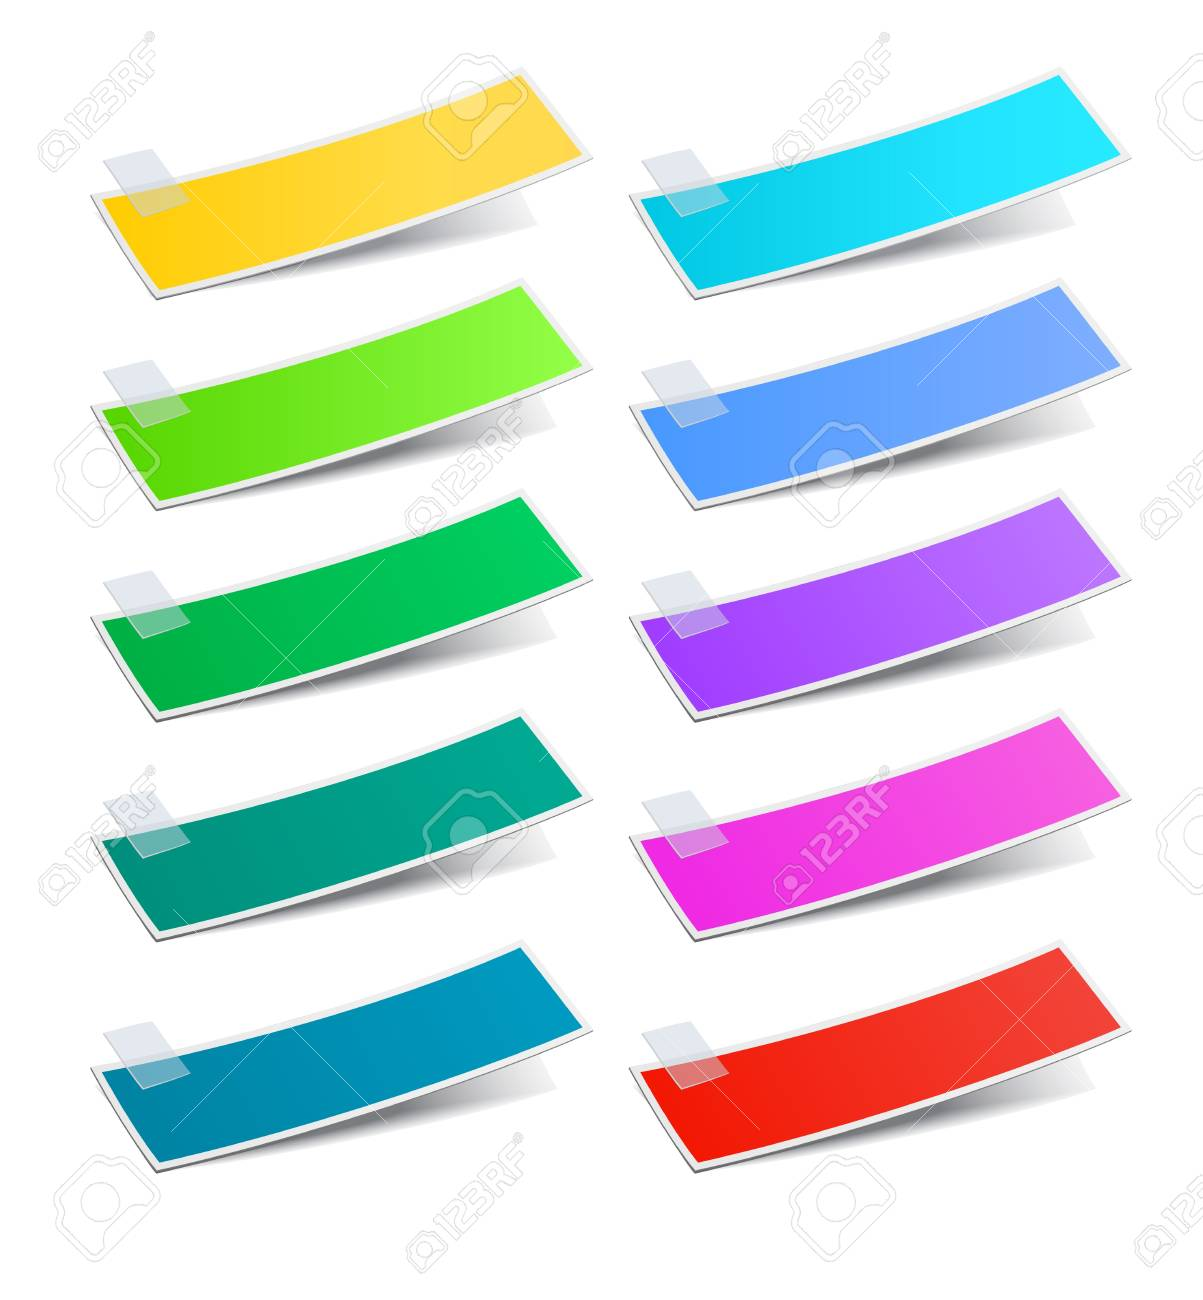 Colorful stickers set, vector illustration Stock Vector - 17777161